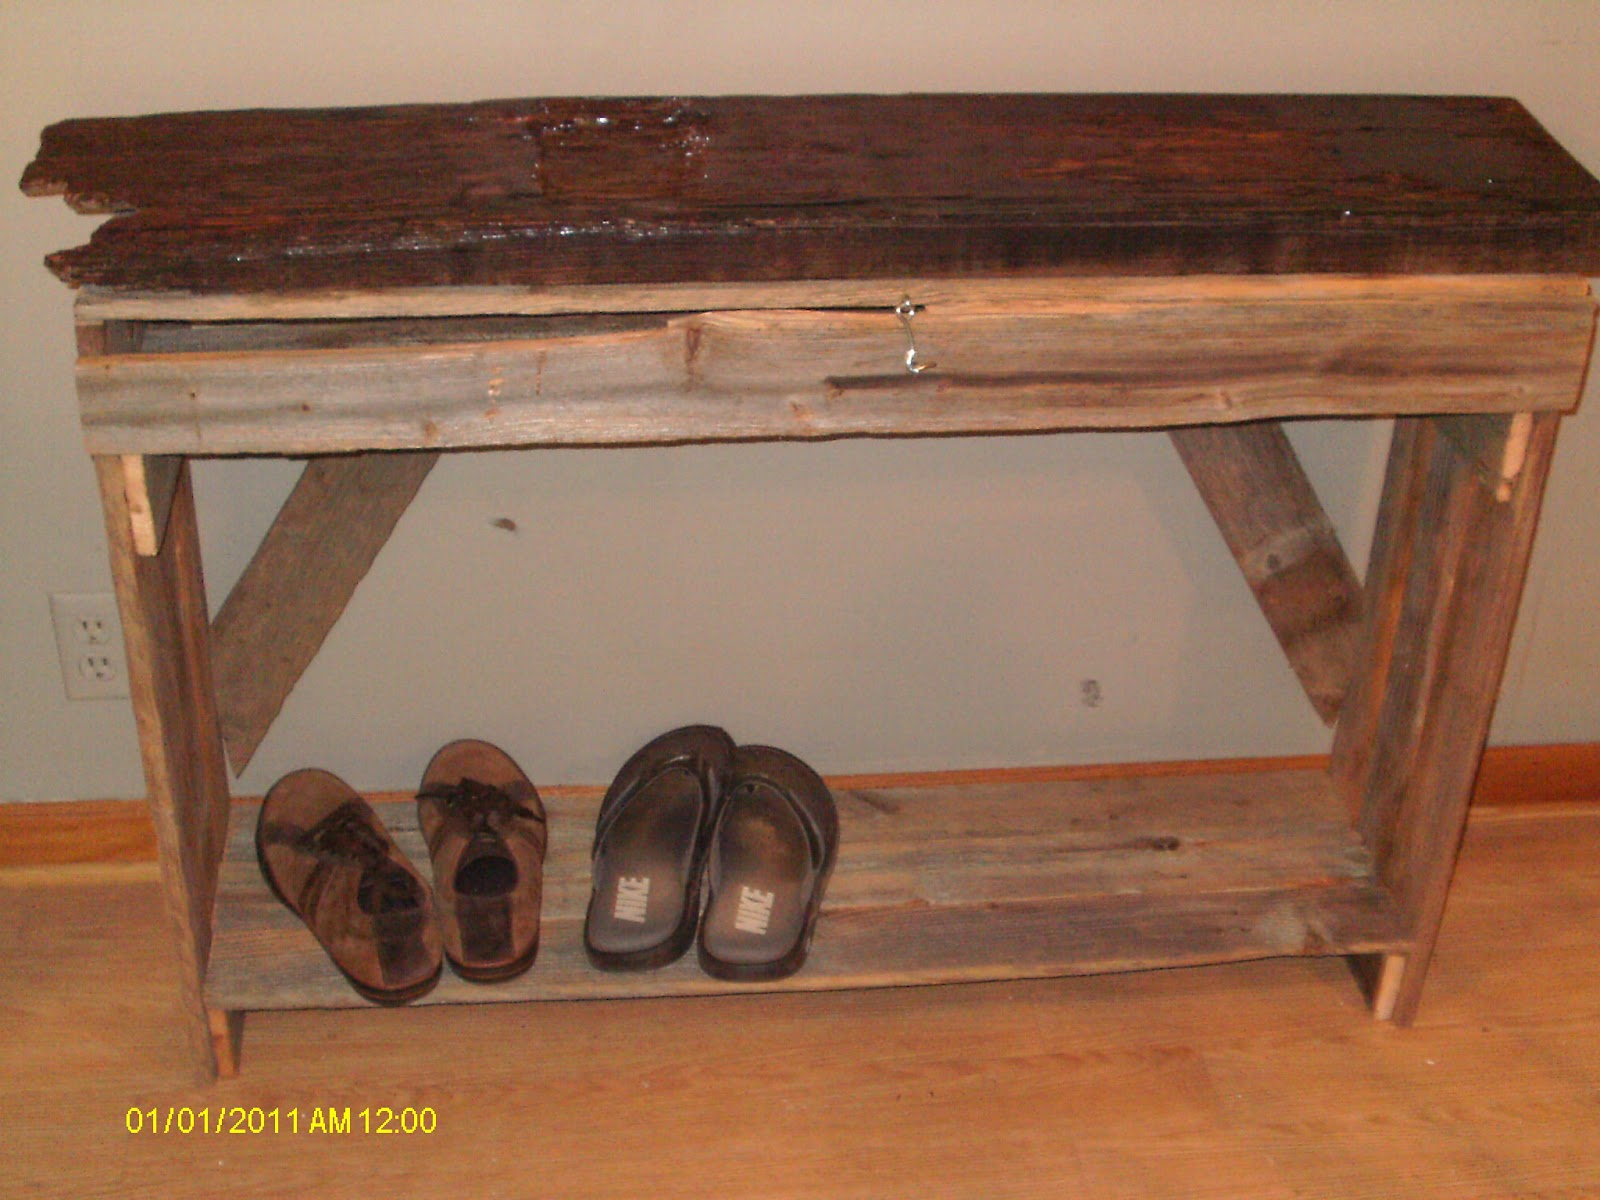 Handmade Rustic Log Furniture Finished Entry Way Cabinit And Entryway Table